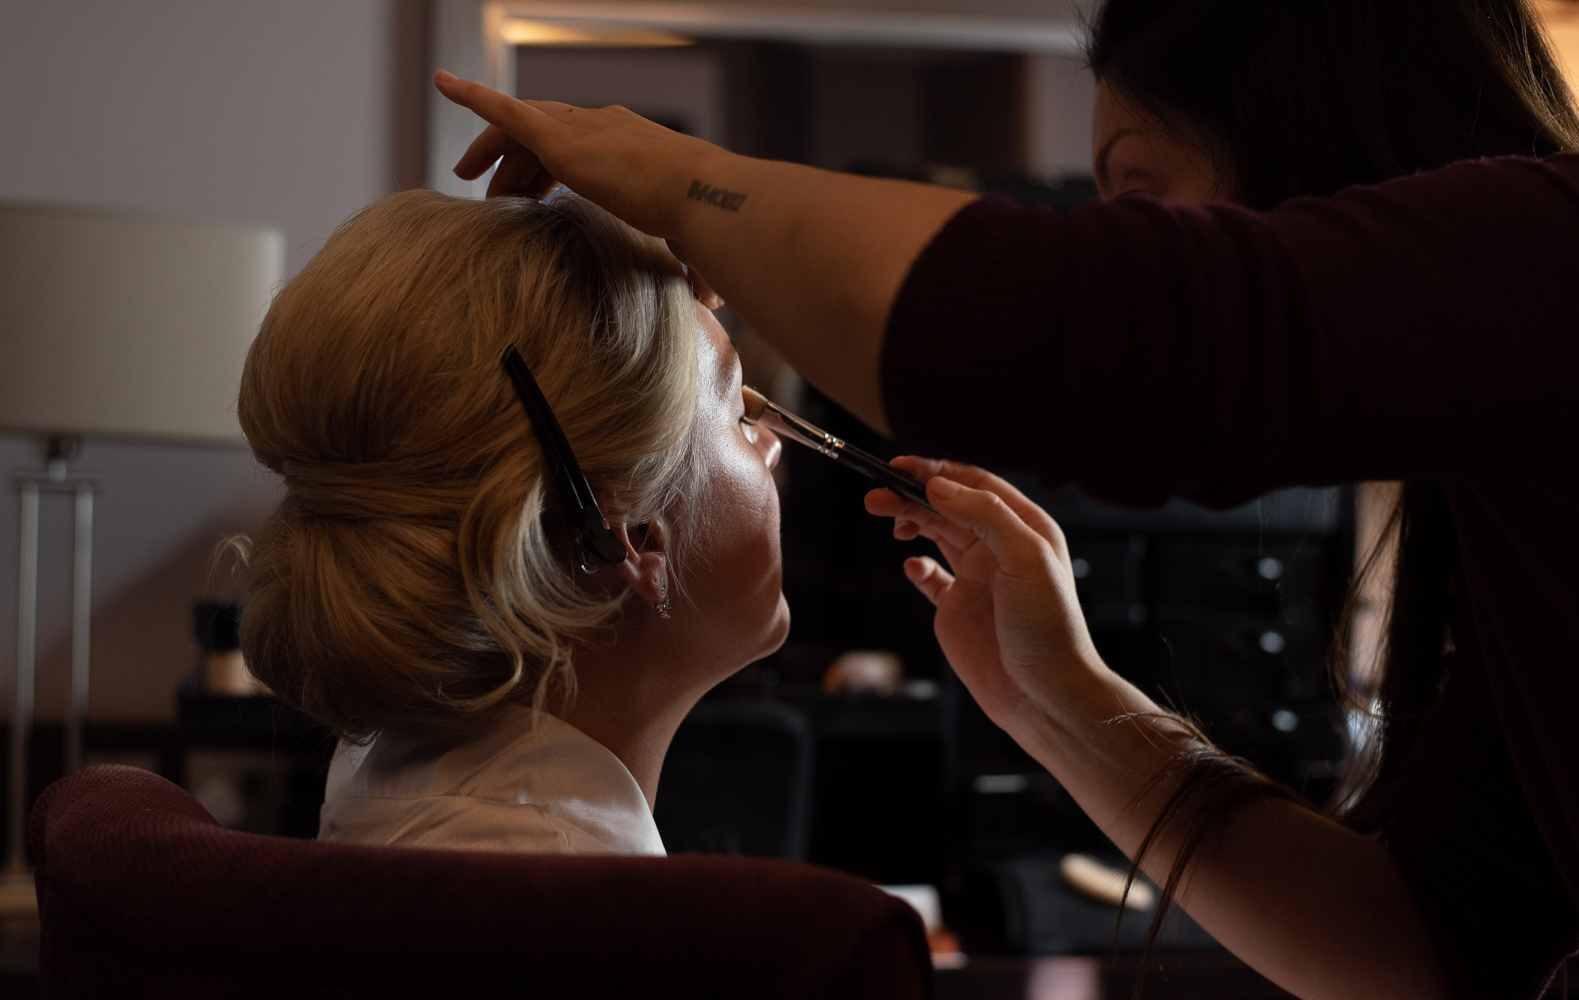 The bride having her makeup applied during morning preparations